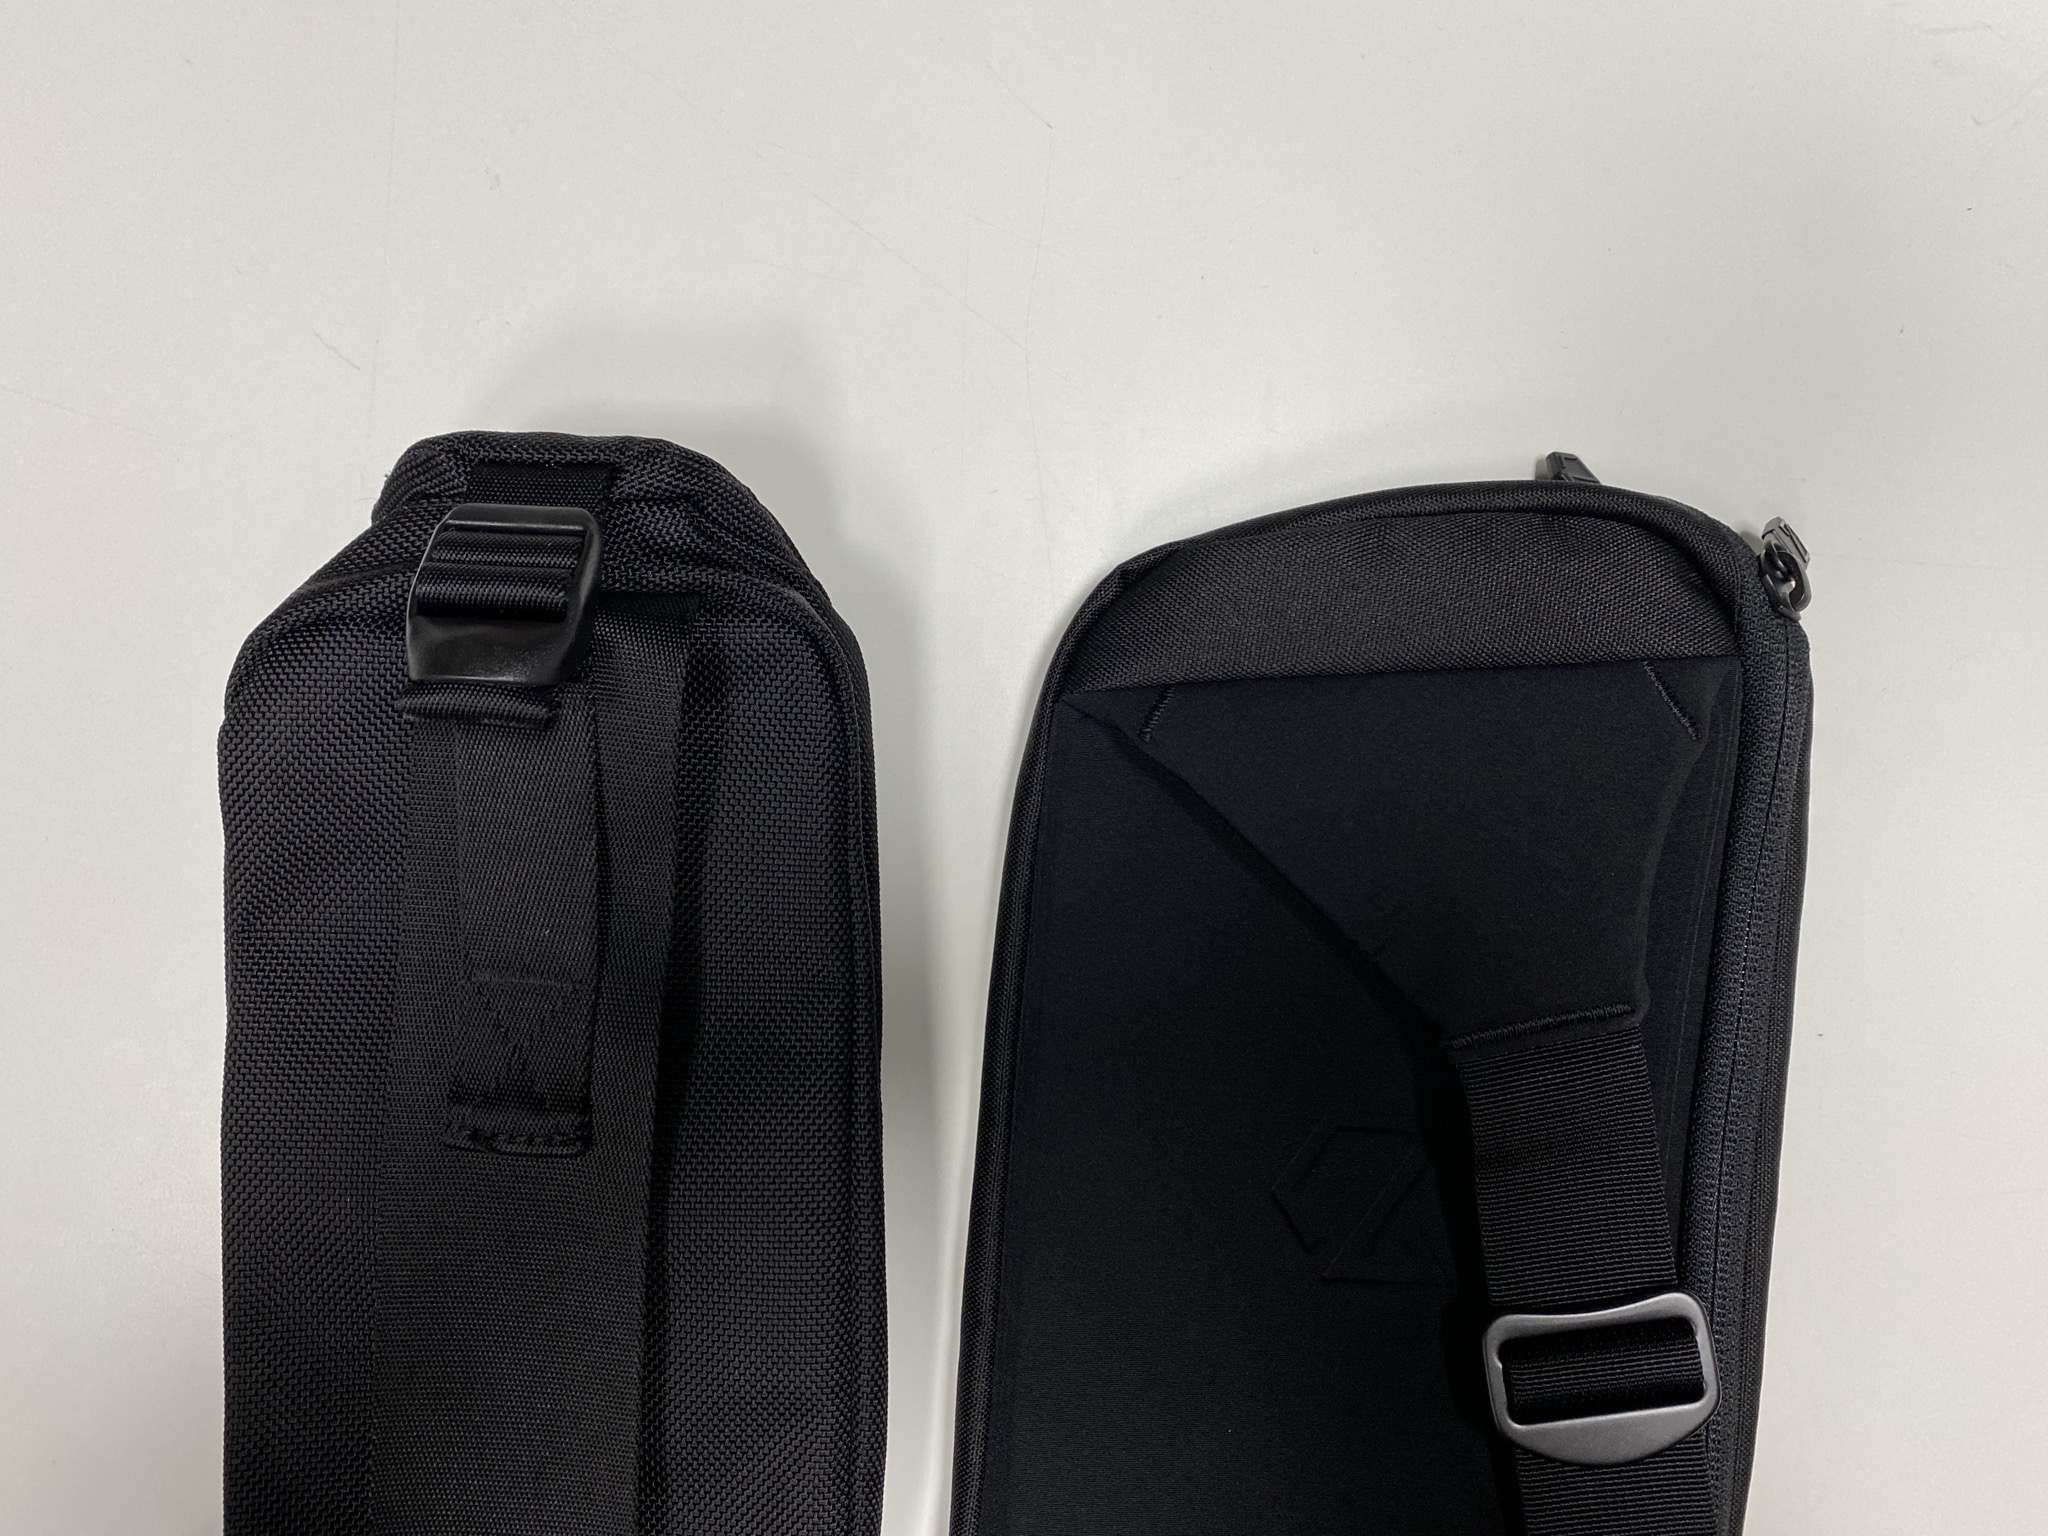 Sling with Adjustment Strap vs Minaal Crossbody Bag